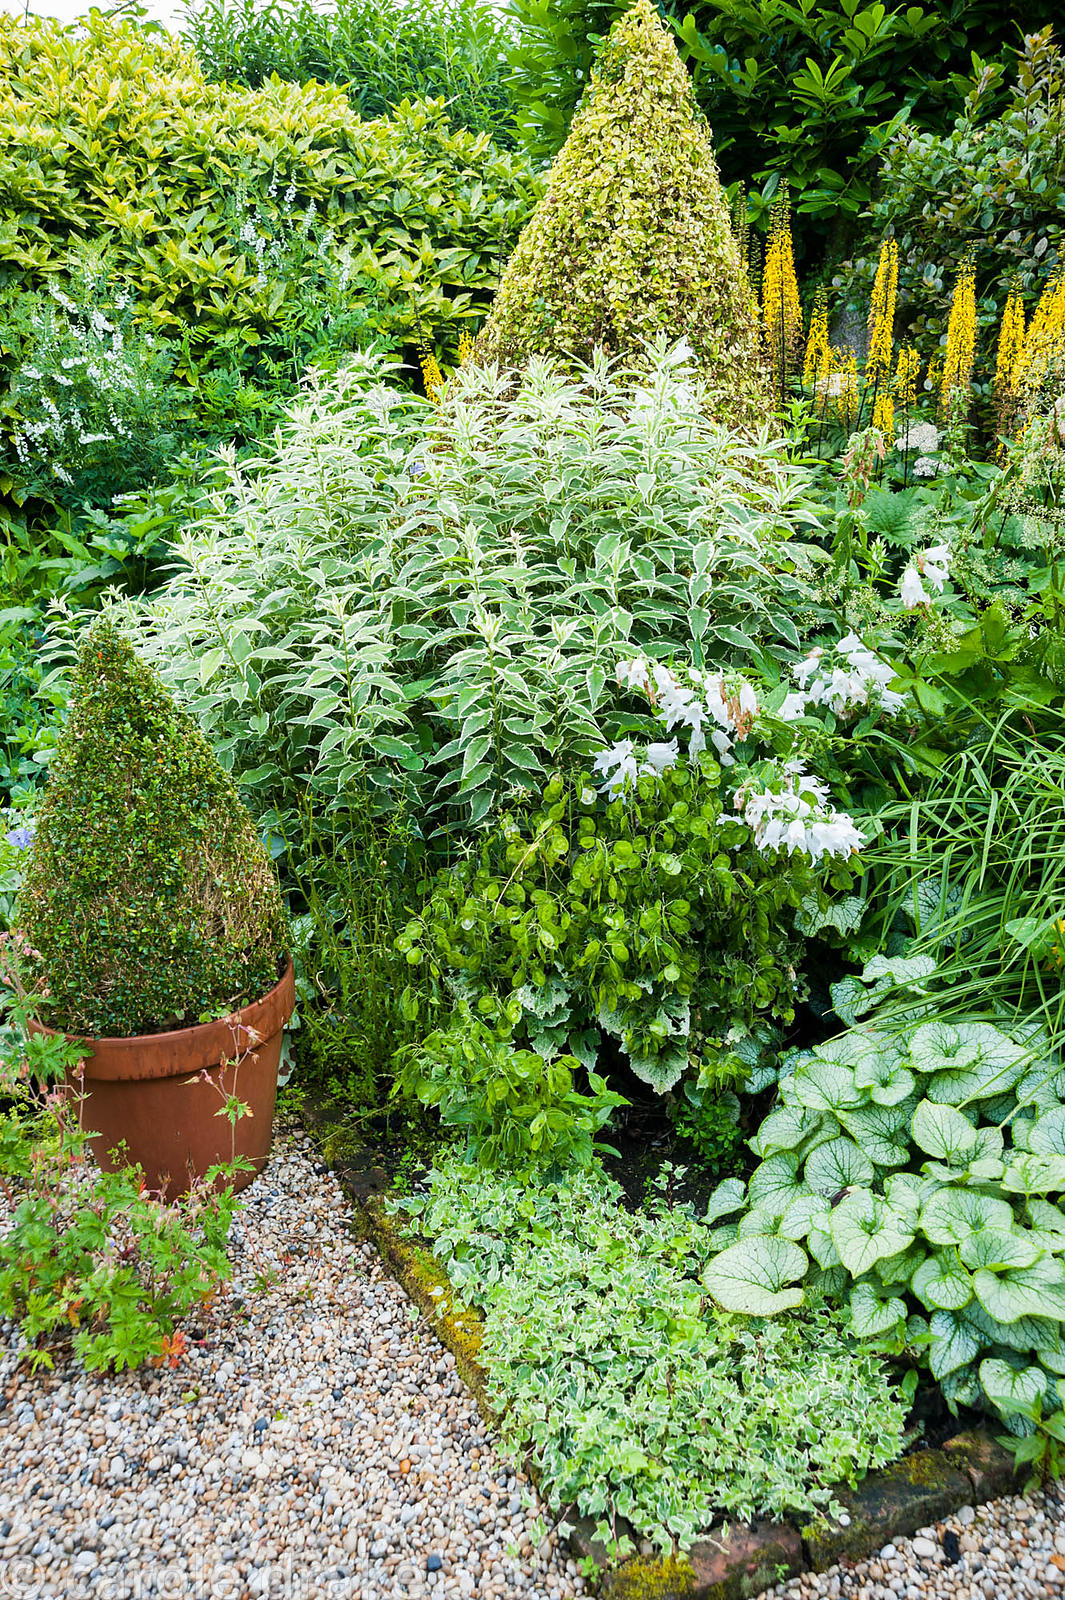 The Vean Garden is predominantly white, blue and gold with lots of strong foliage plants including clipped box and golden pri...